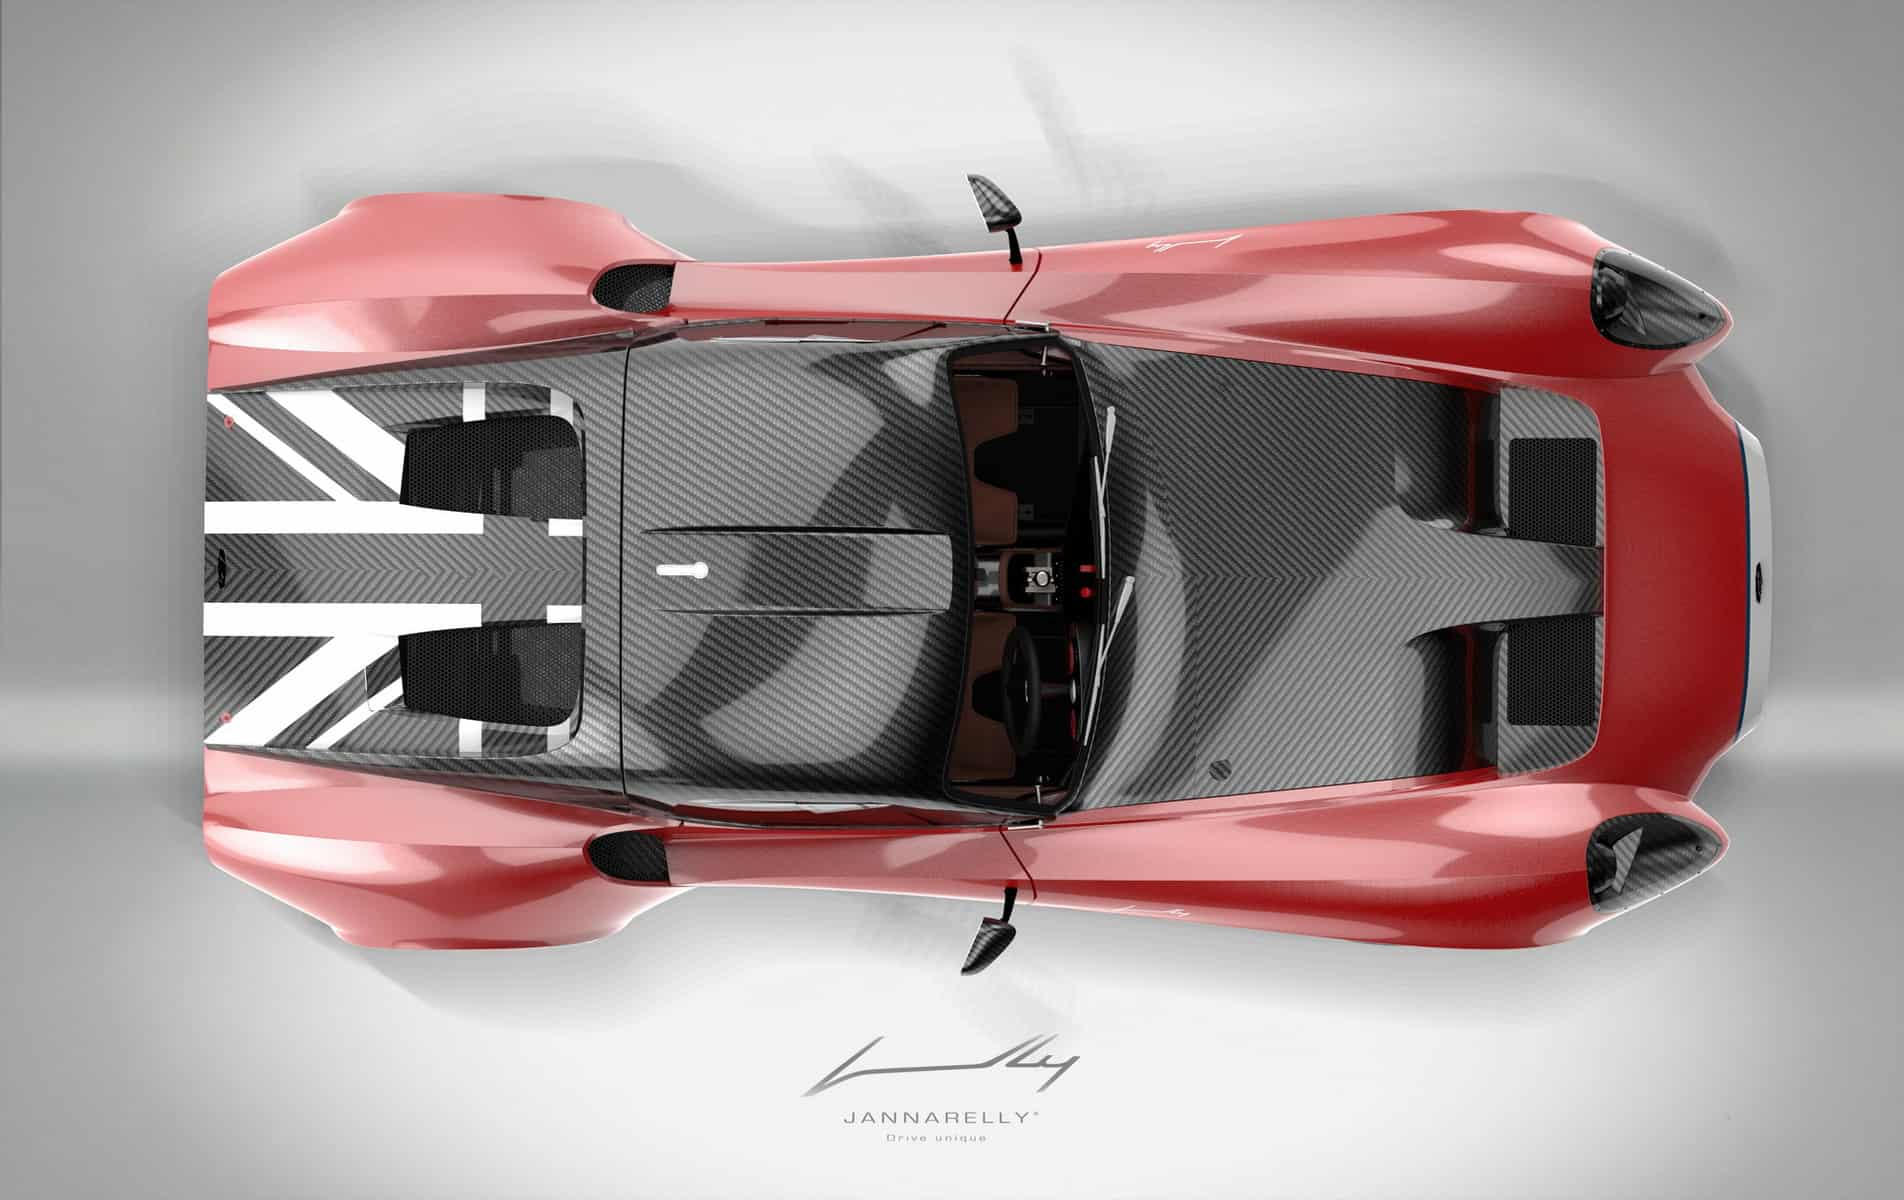 Jannarelly Design-1 UK Edition 23